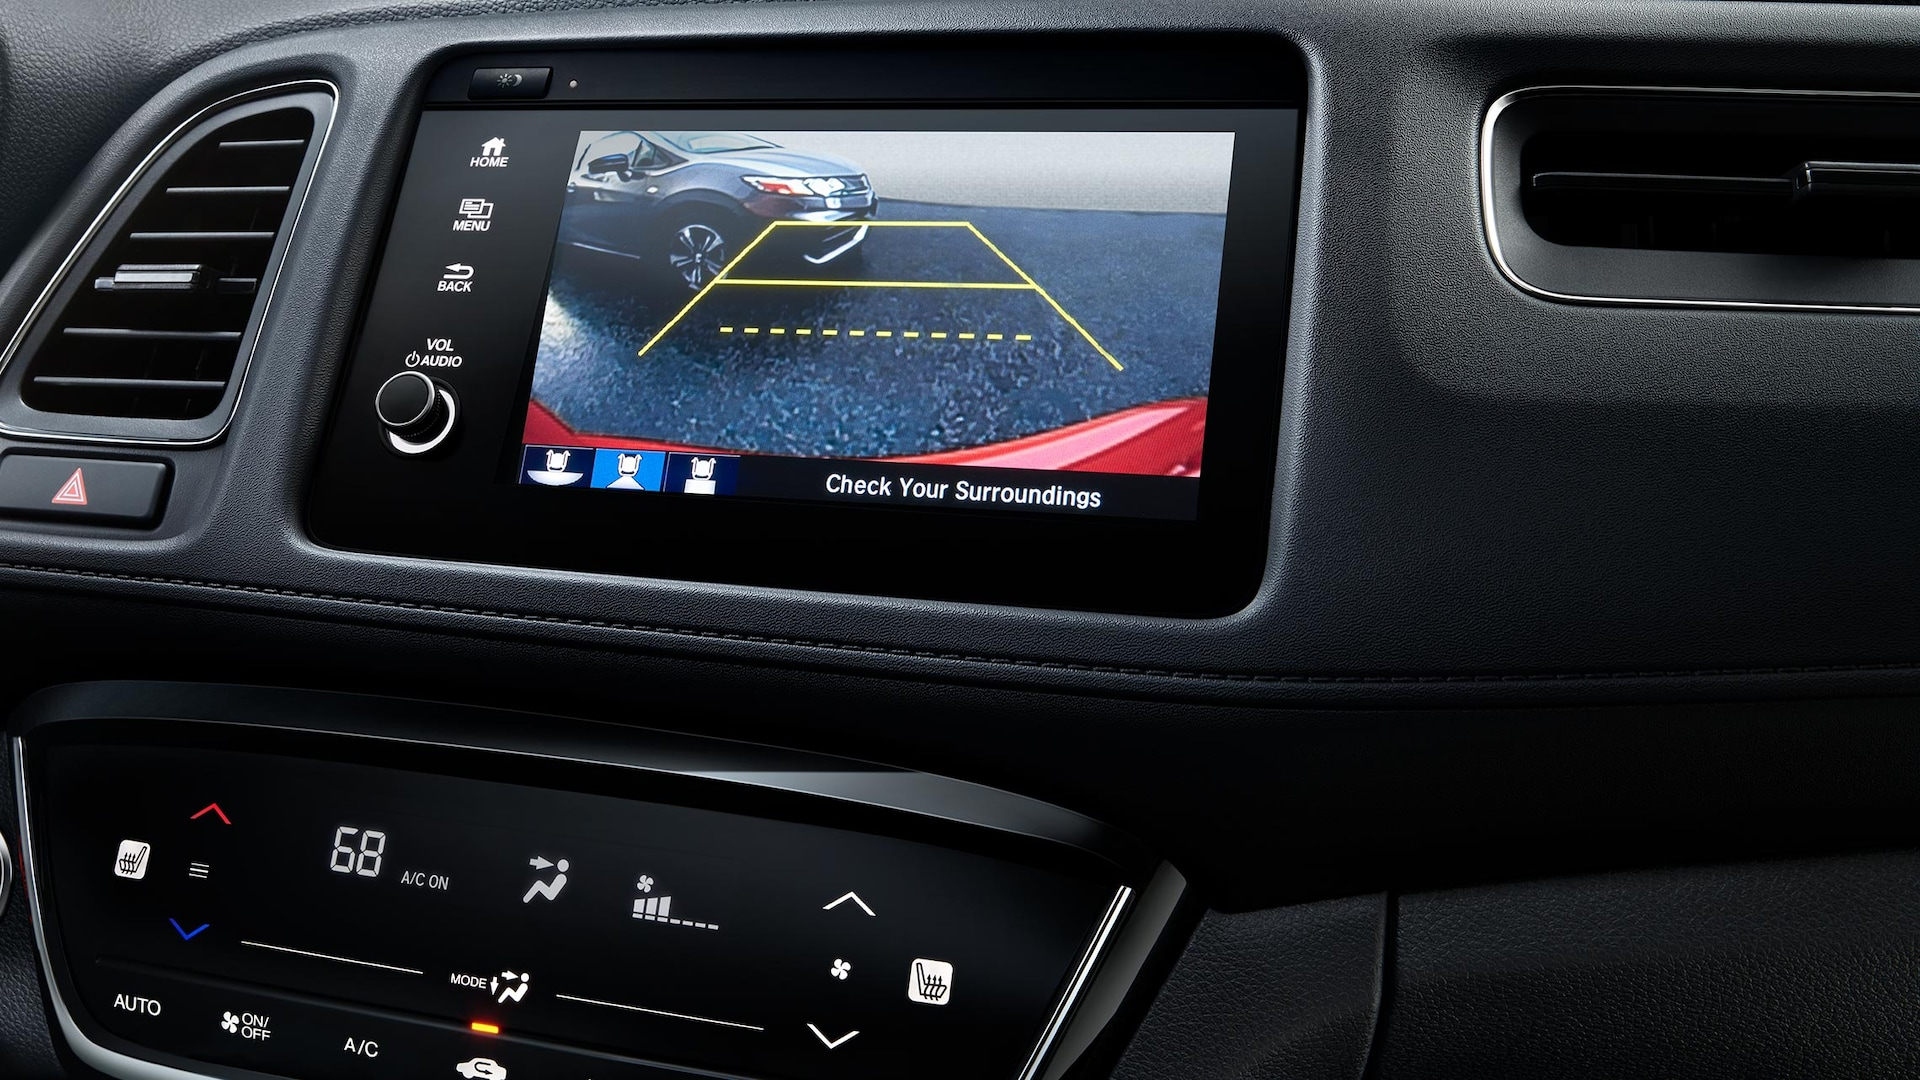 Multi-angle rearview camera detail on Display-Audio touchscreen in the 2019 Honda HR-V Touring.